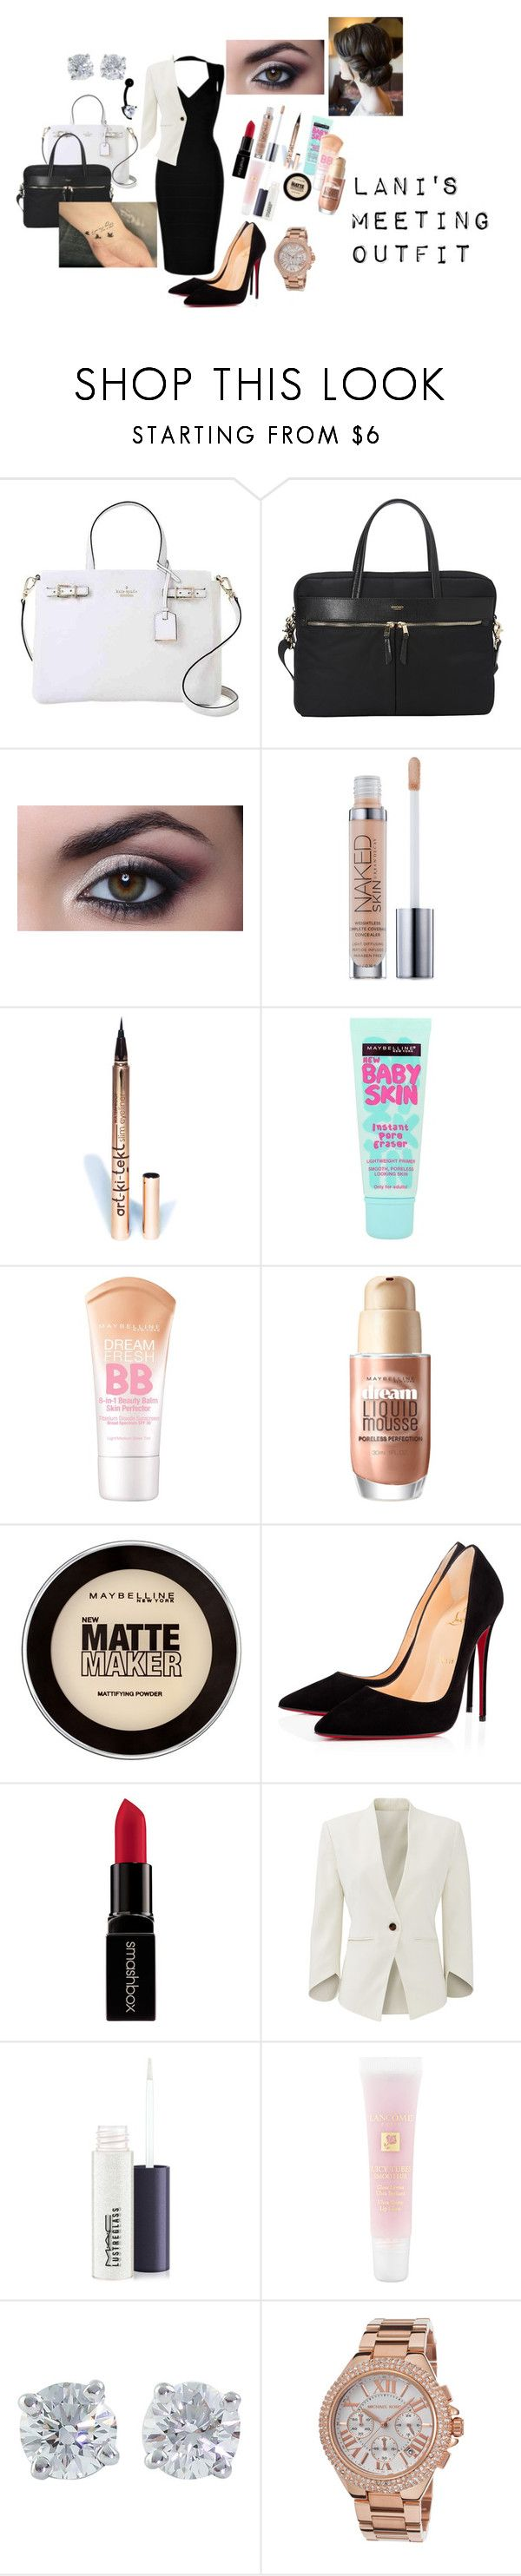 """""""Lani goes to a meeting"""" by huntress-383 ❤ liked on Polyvore featuring Kate Spade, Knomo, Urban Decay, LASplash, Maybelline, Christian Louboutin, Smashbox, Slate & Willow, MAC Cosmetics and Lancôme"""